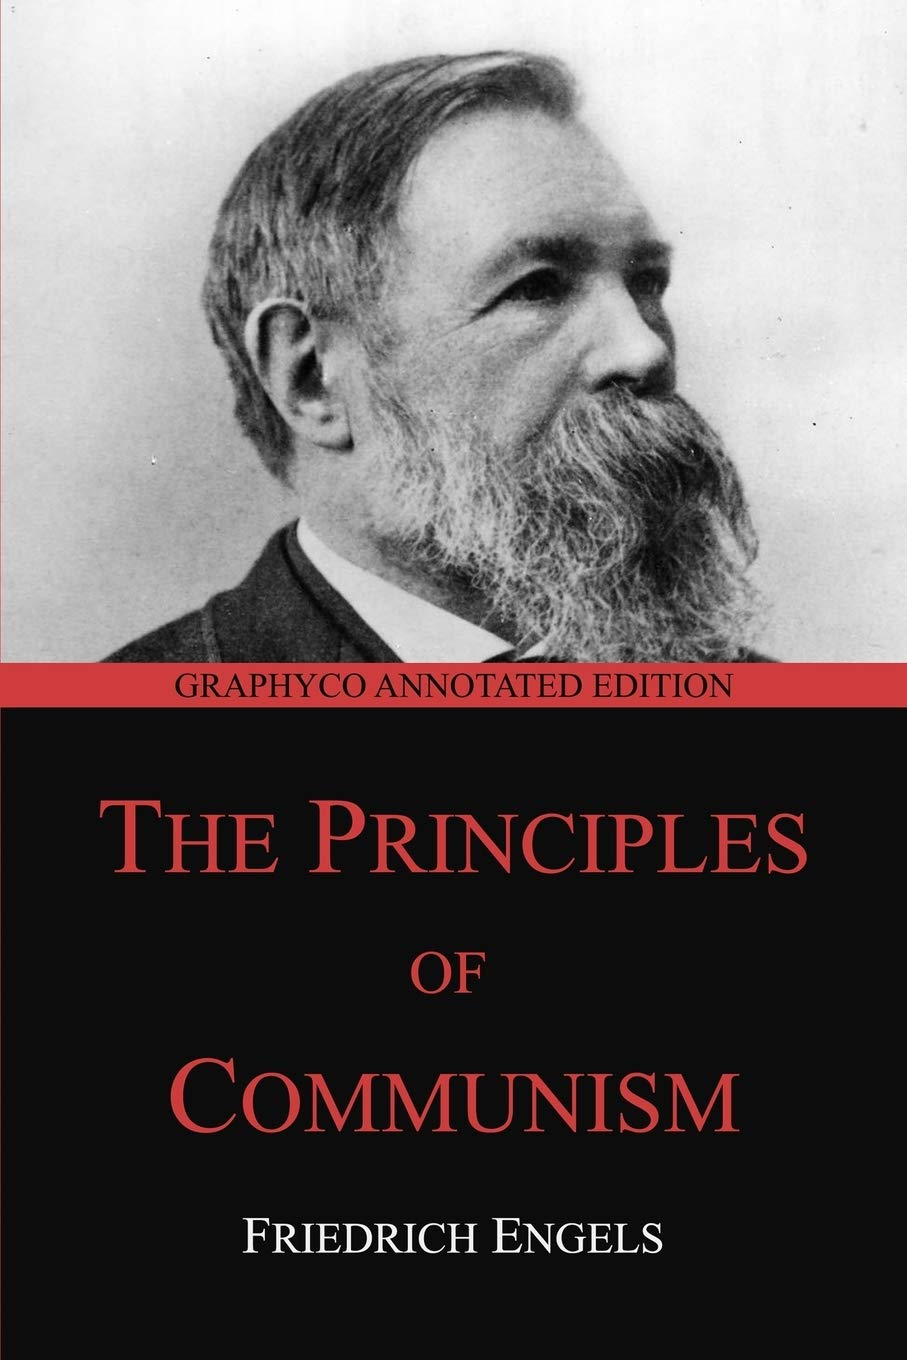 The Principles of Communism: Graphyco Annotated Edition: Engels, Friedrich, Editions, Graphyco: 9798626989175: Amazon.com: Books